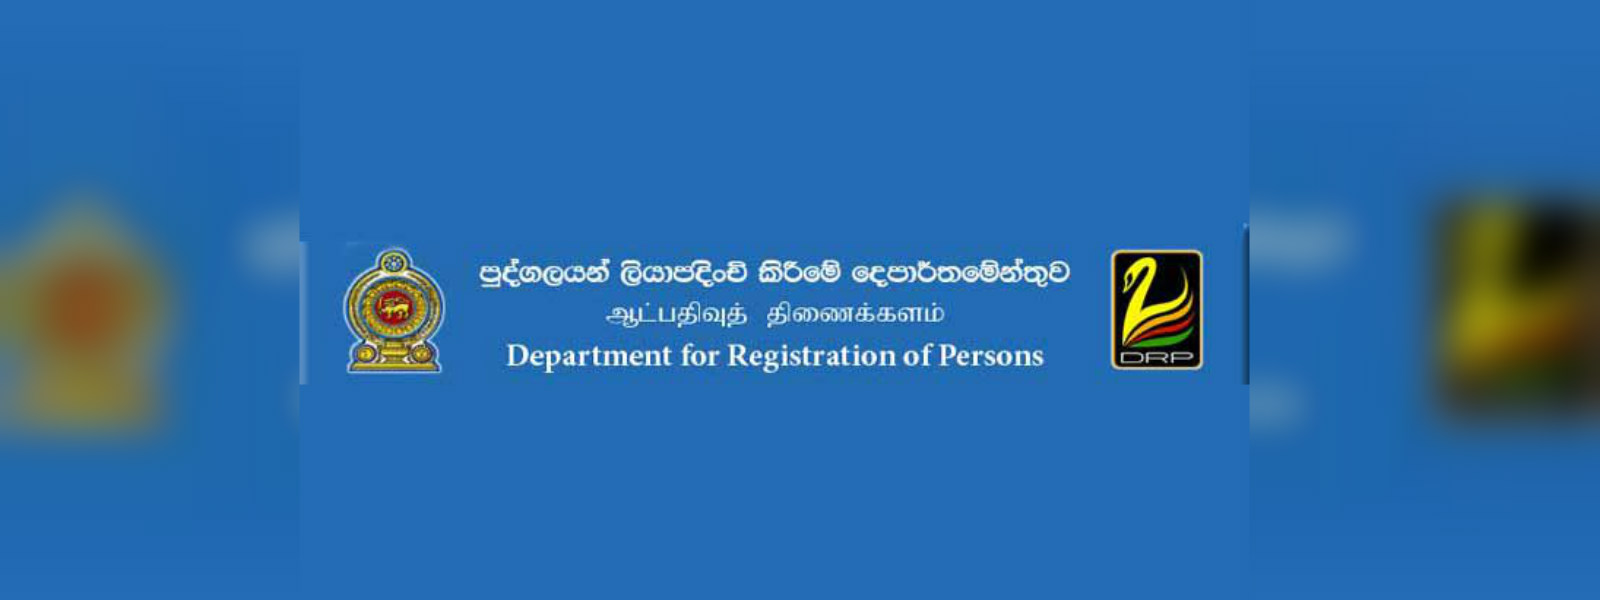 Temporary ID cards for over 300,000 voters